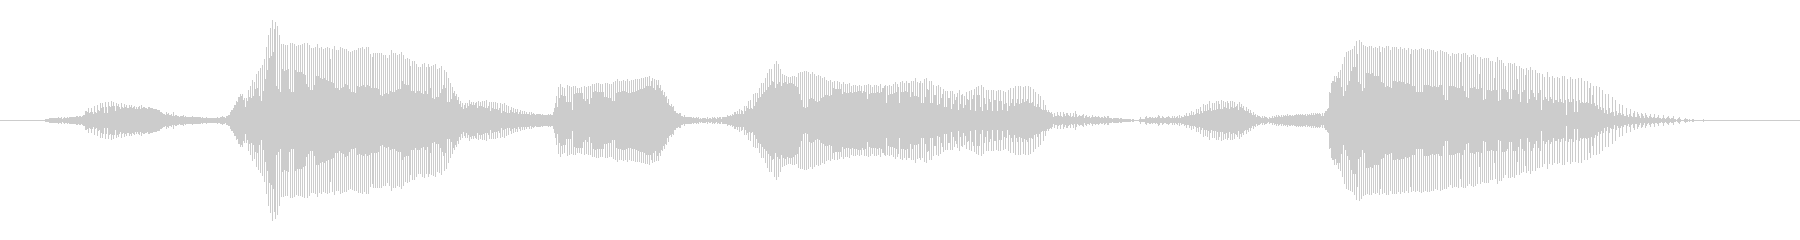 """6-year-old girl """"2021""""-01's unreproduced waveform"""